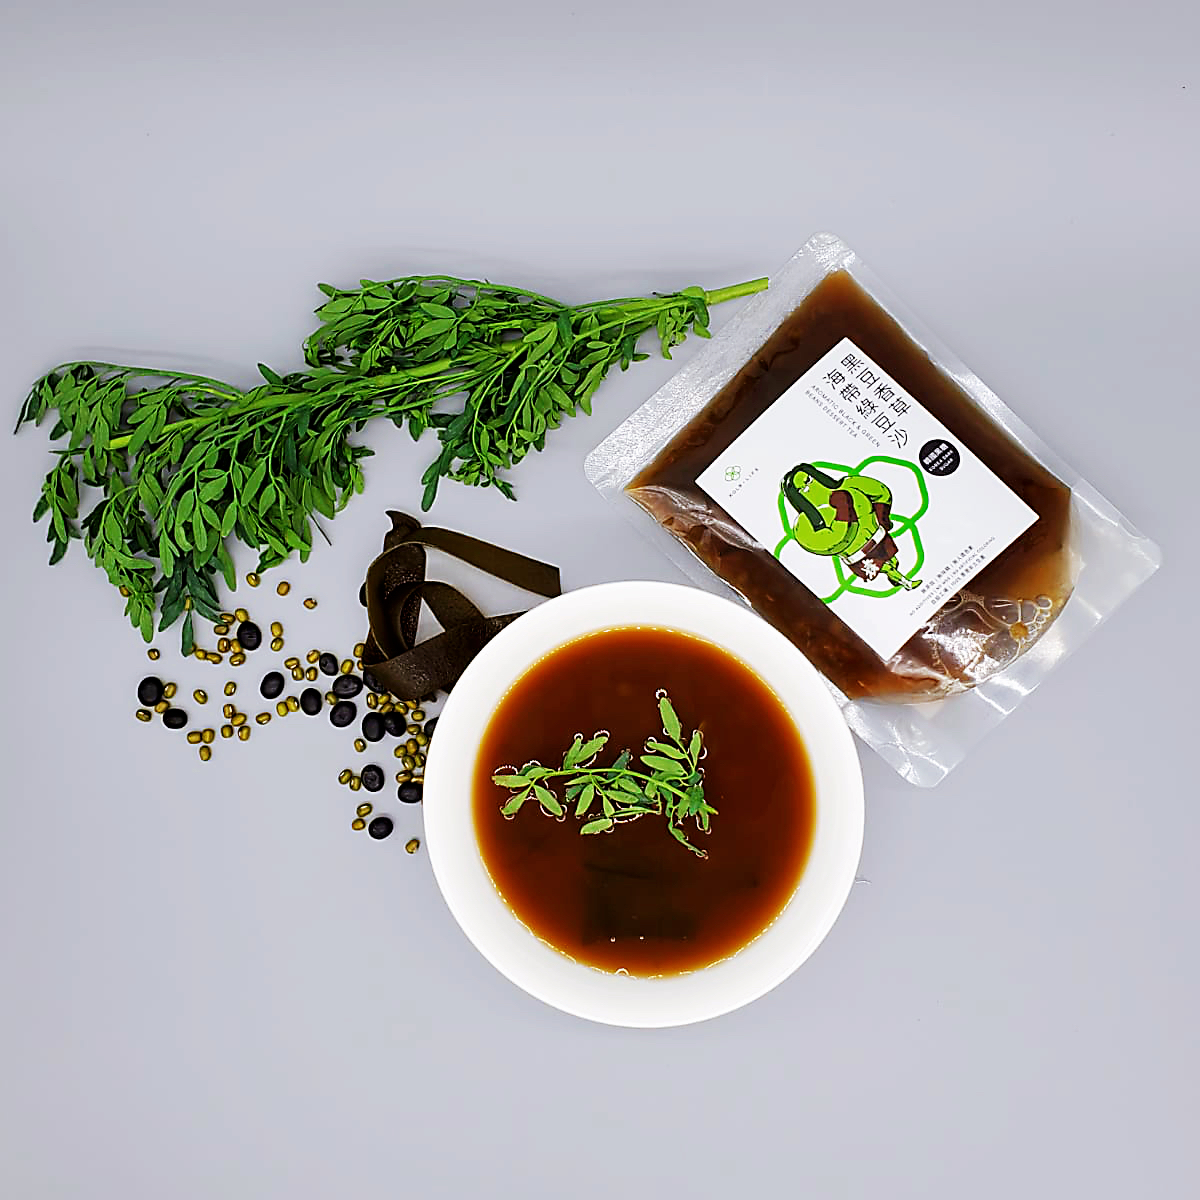 Aromatic Black & Green Beans, Dessert Tea